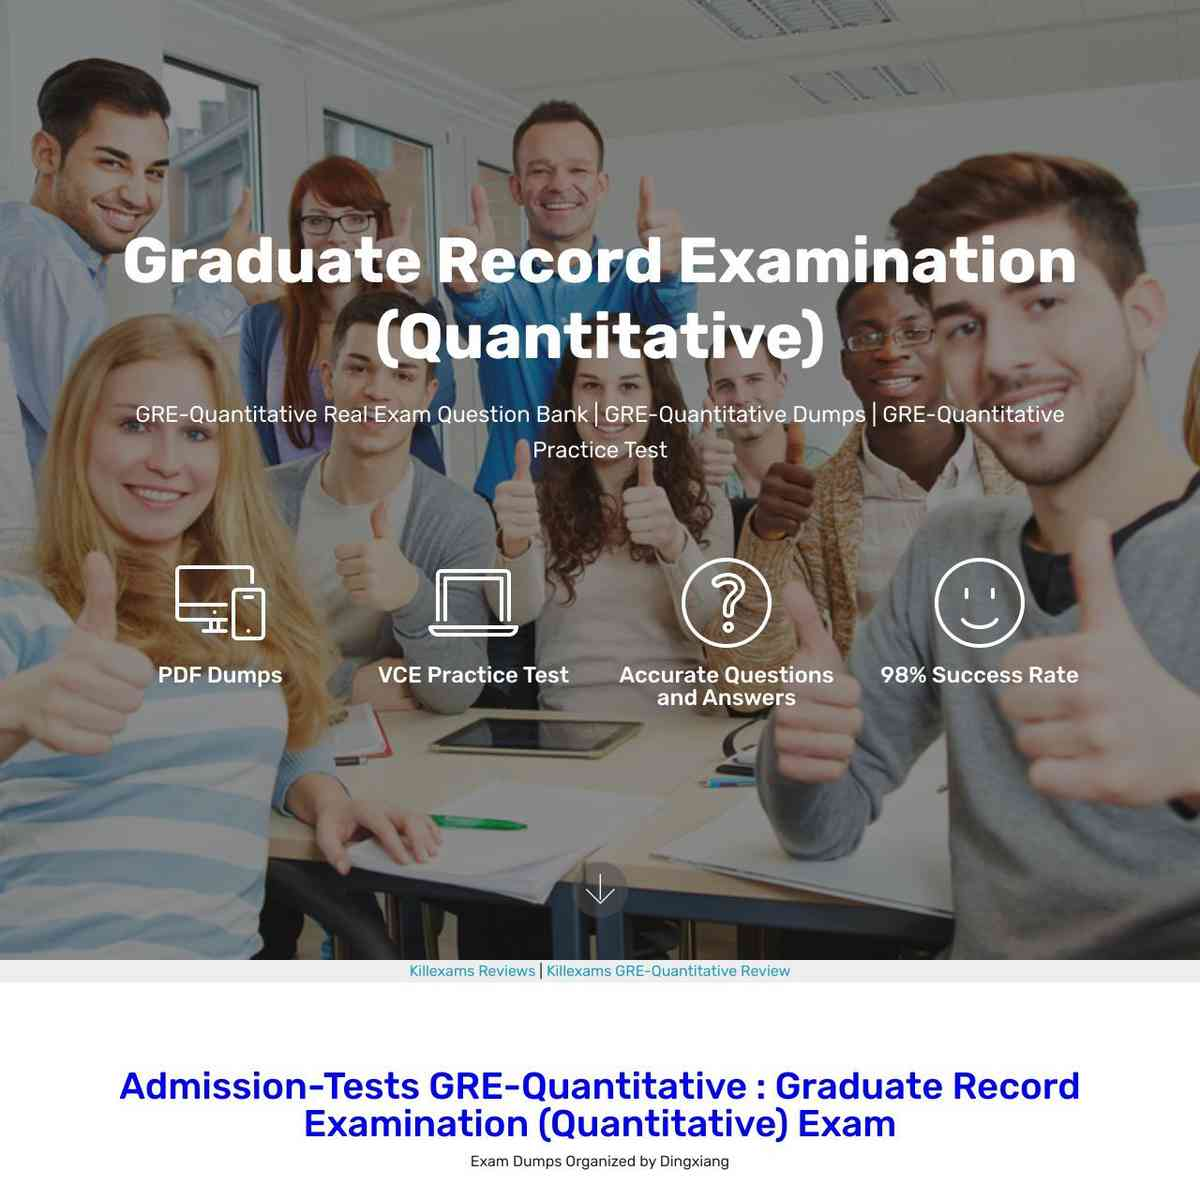 GRE-Quantitative Study Guide are ultimately necessary for real exam